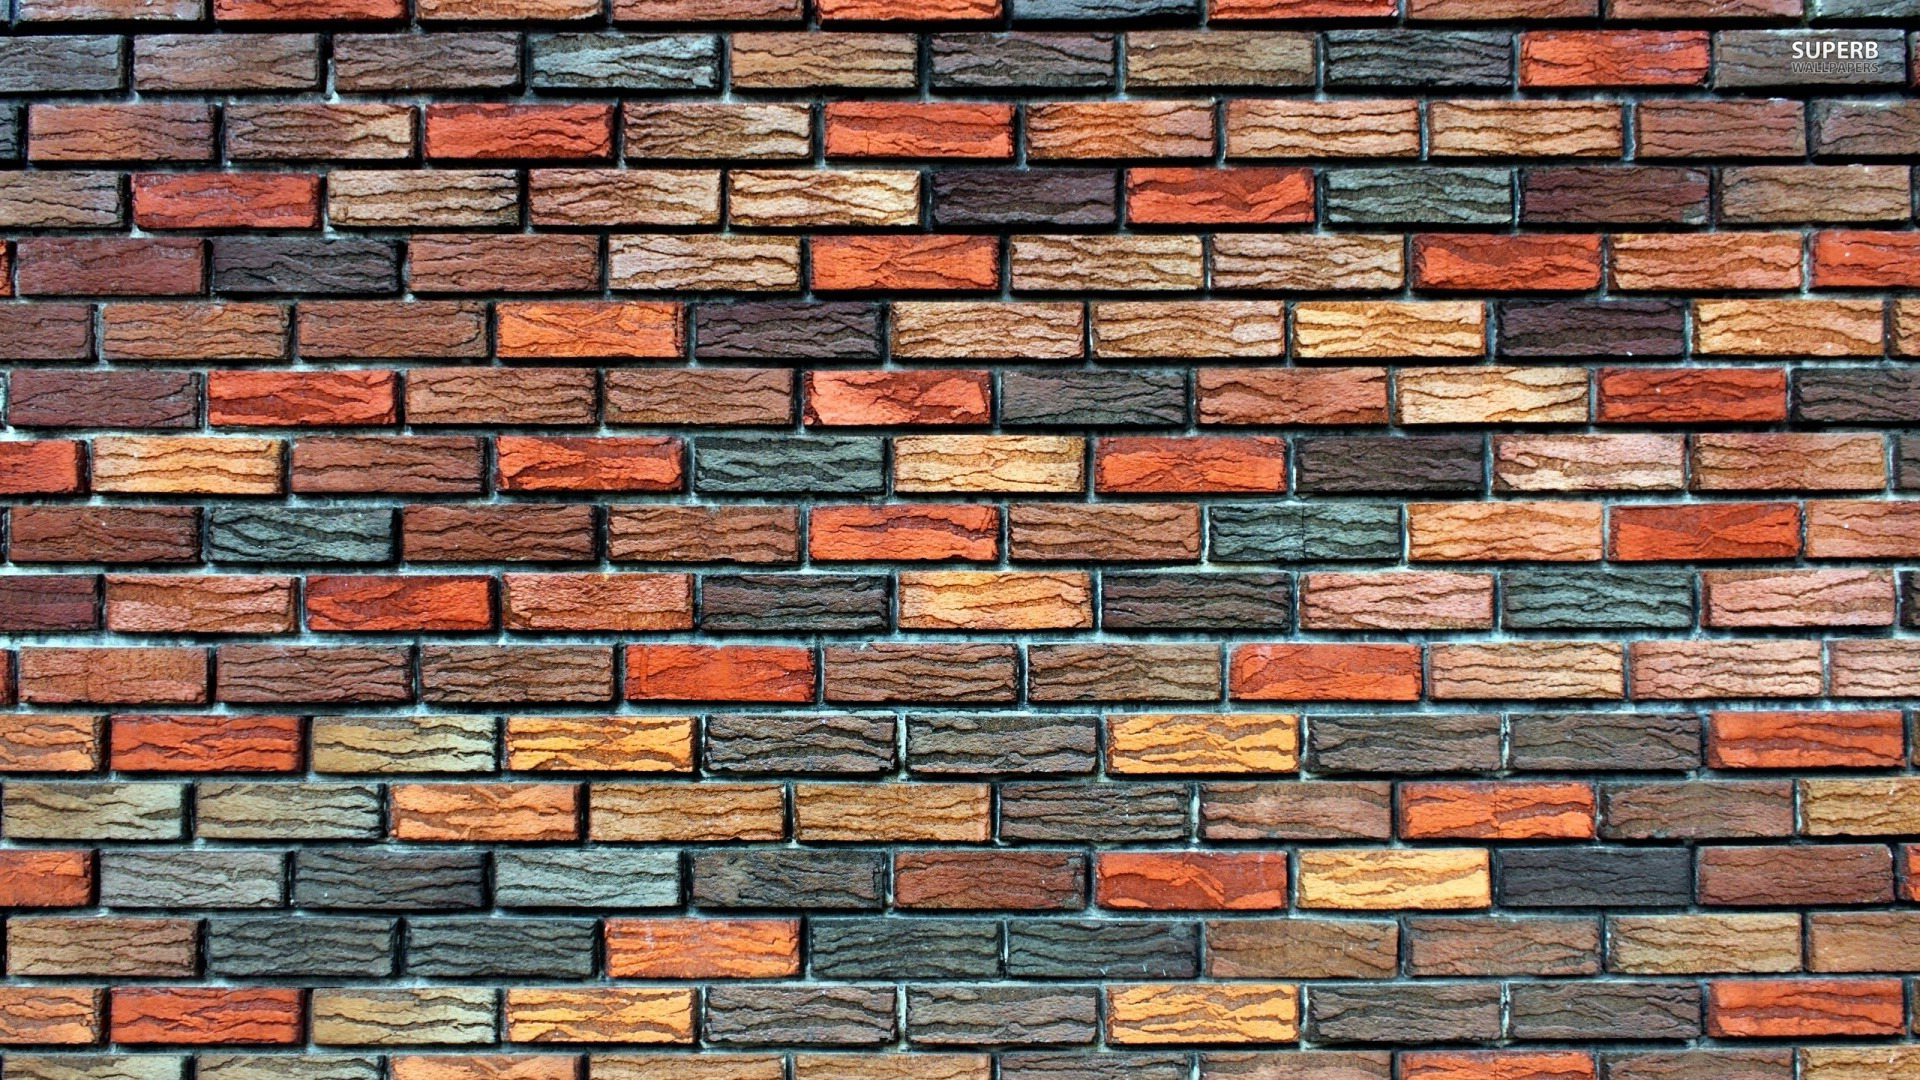 Wall Design Hd Photos : Hd brick wallpapers backgrounds for free download